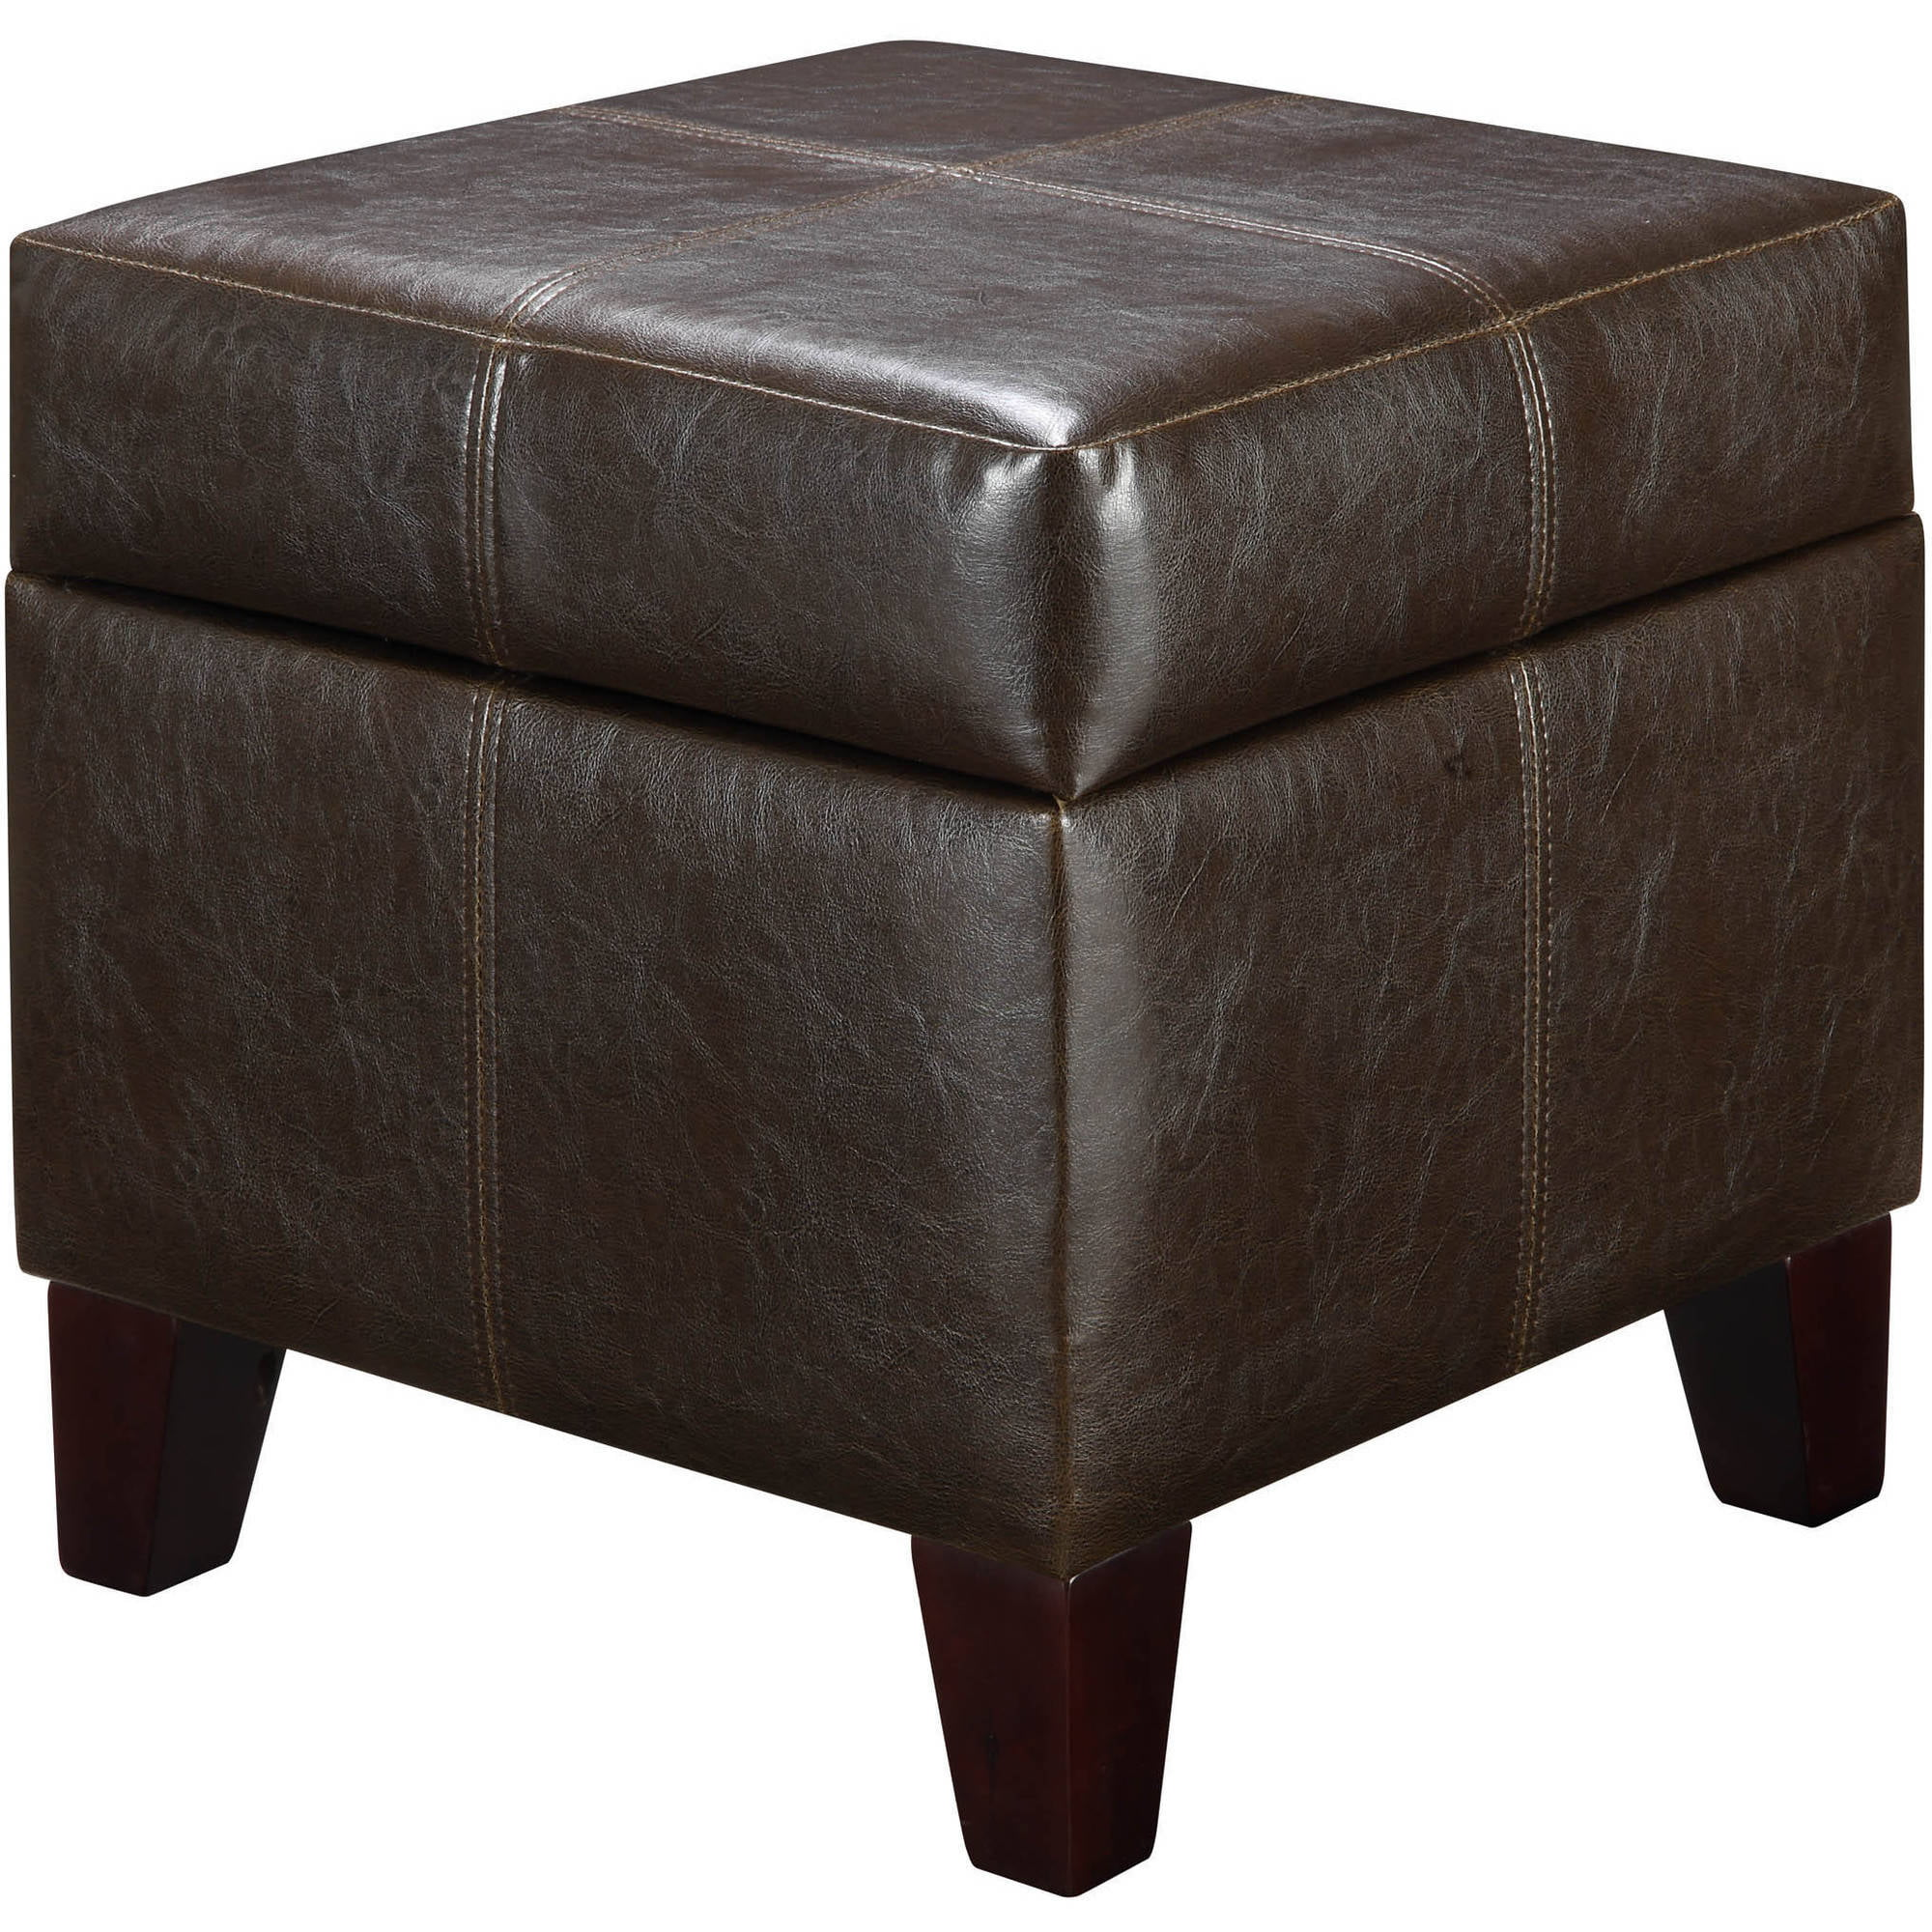 Dorel Living Small Storage Ottoman, Multiple Colors   Walmart.com